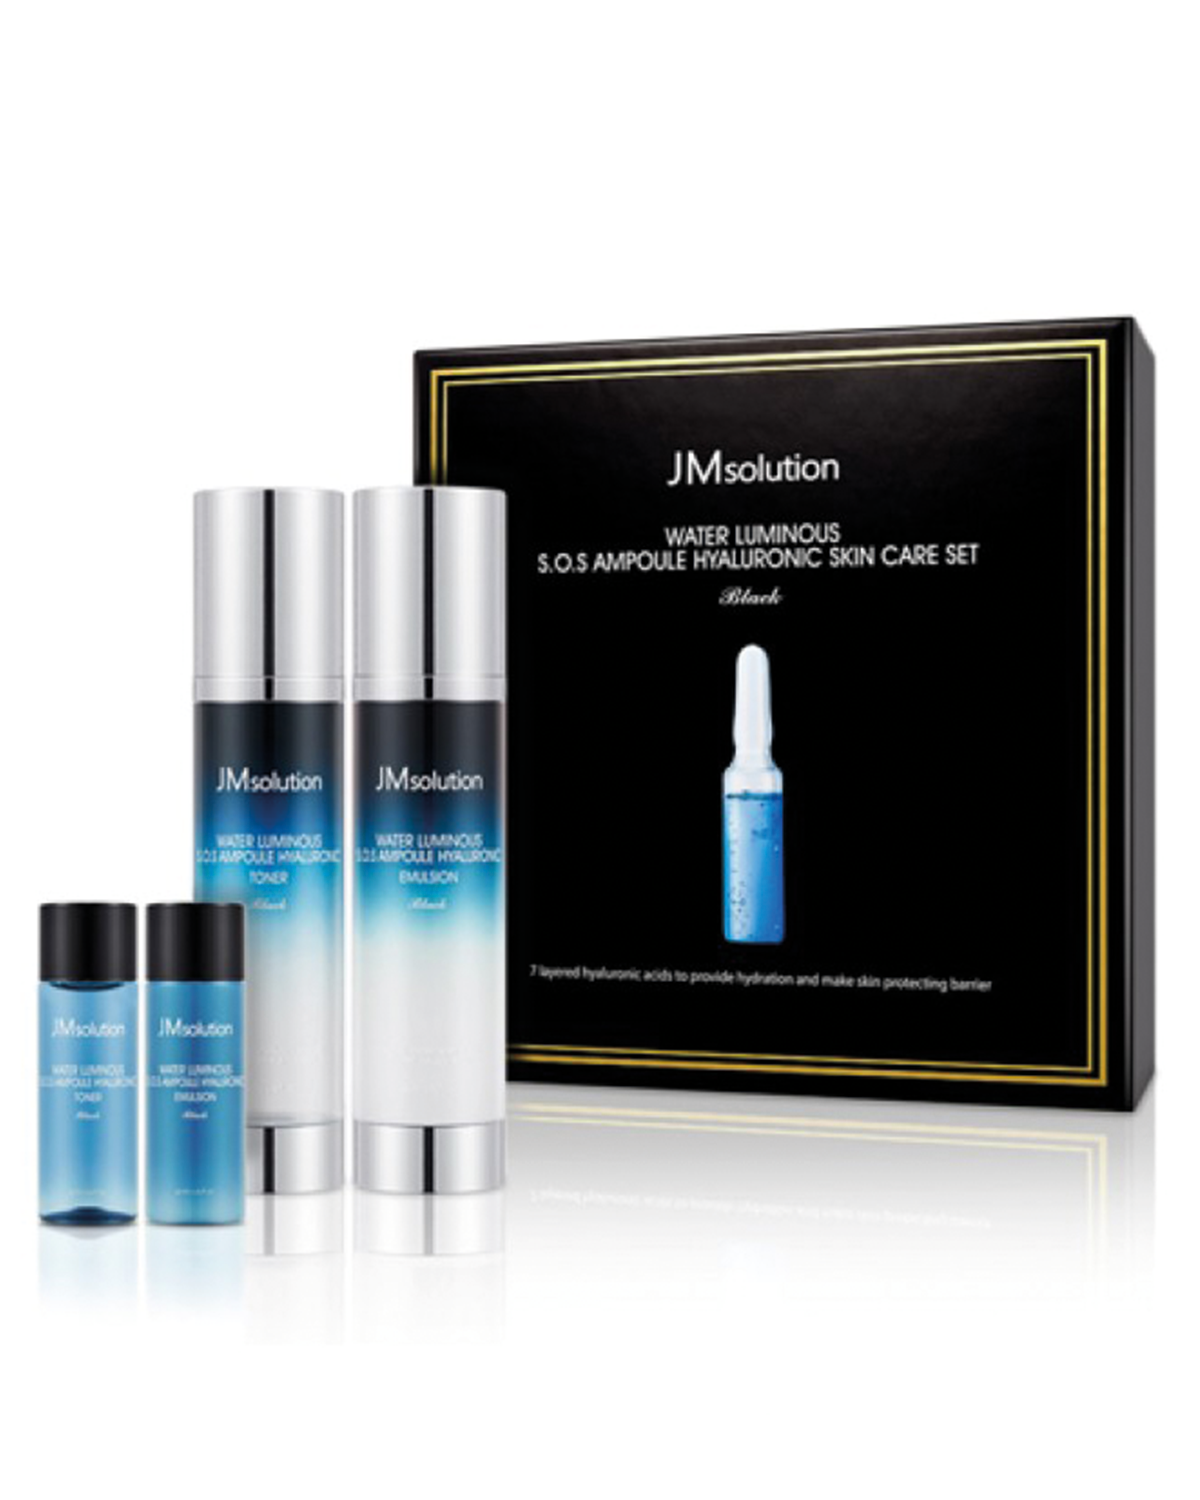 JM SOLUTION Water Luminous S.O.S Ampoule Hyaluronic Skin Care Set